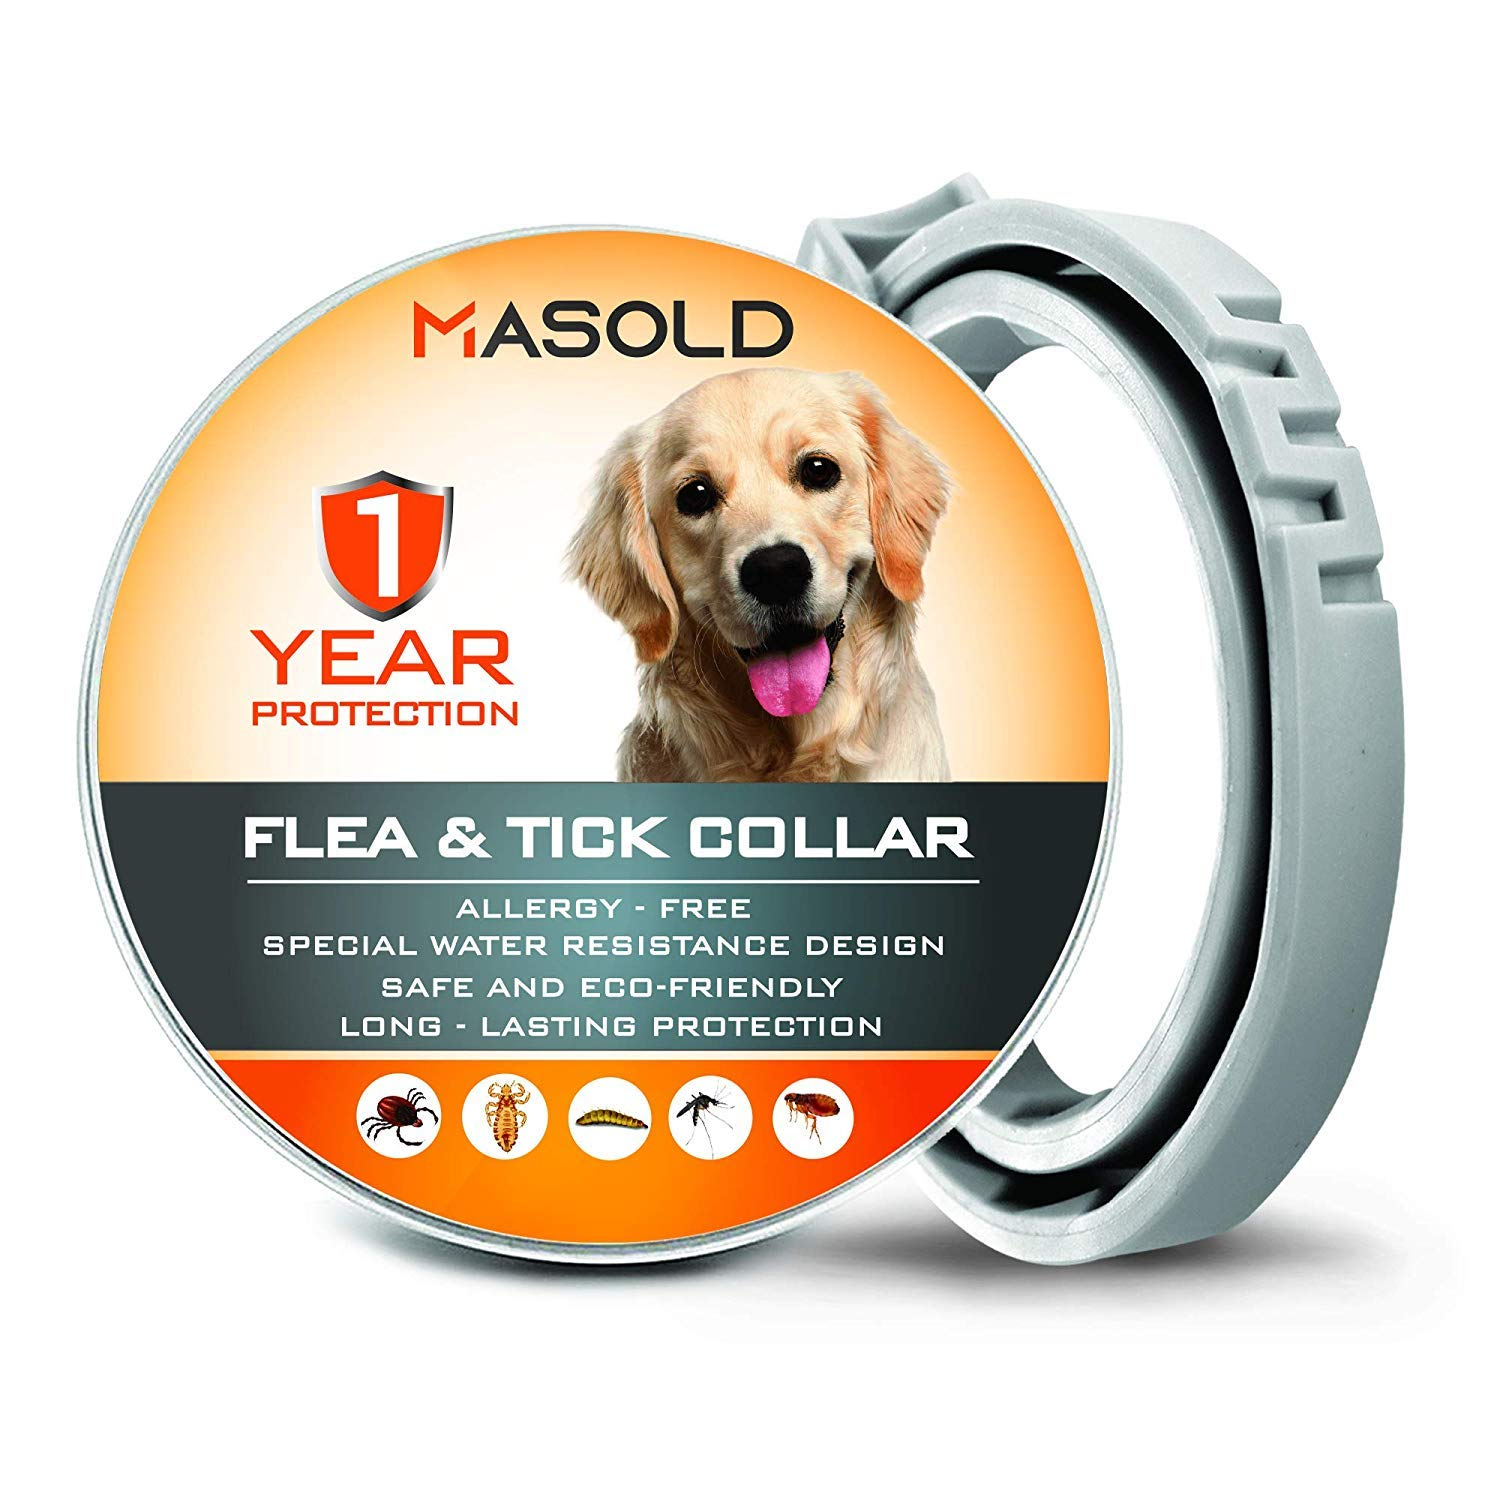 MASOLD Dog Flea and Tick Control Collar - 12 Months Flea and Tick Control for Dogs - Natural, Herbal, Non-Toxic Dog Flea Treatment - Waterproof Protection and Adjustable Best Flea Collar for Dogs